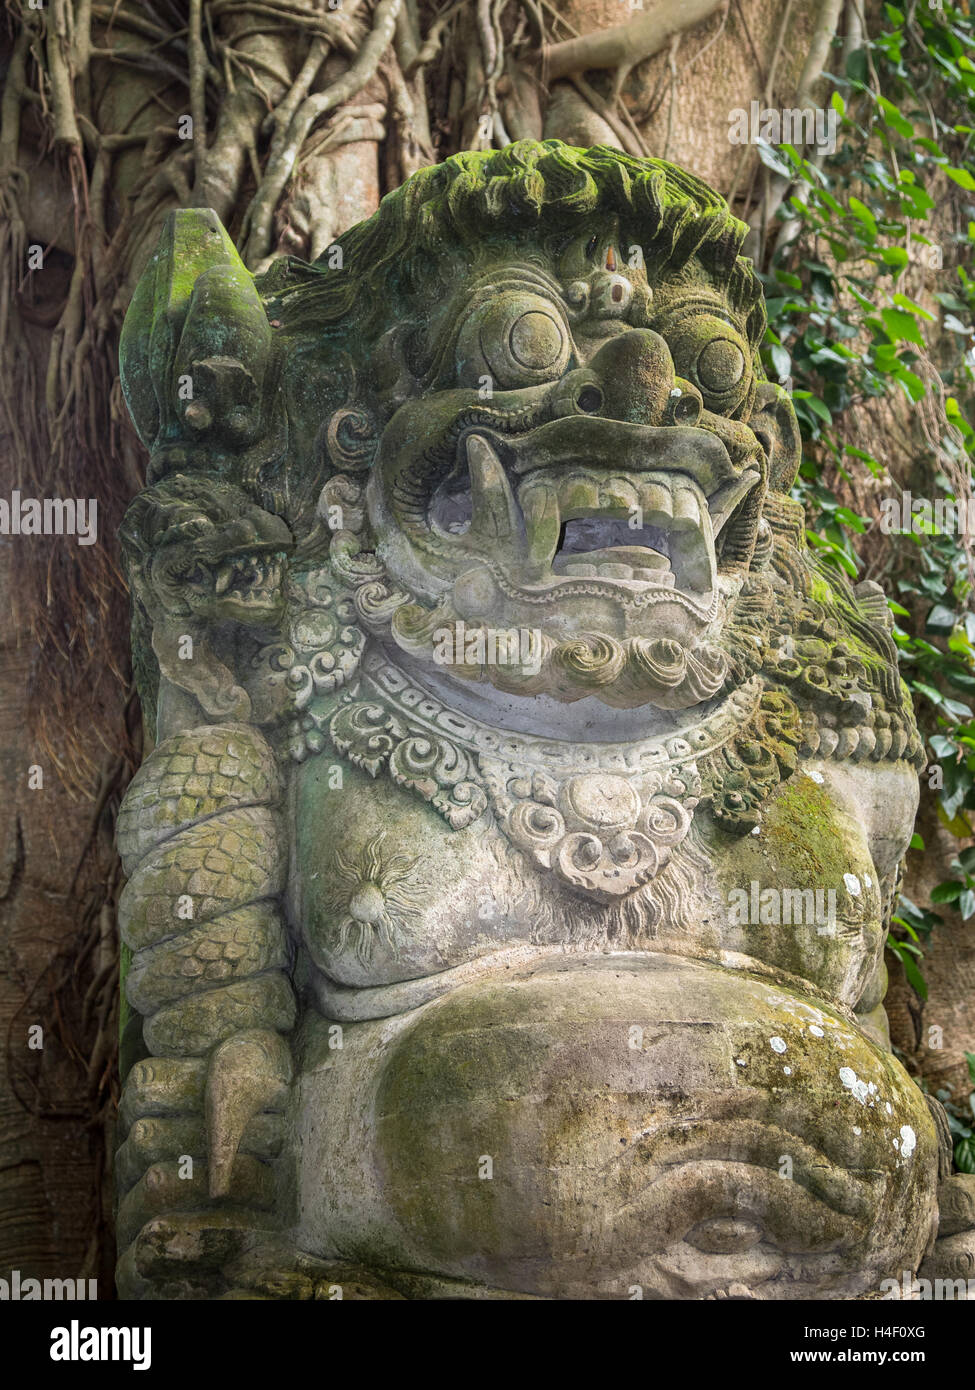 A typical old stone carving in the Ubud Monkey Forest in Bali, Indonesia. - Stock Image